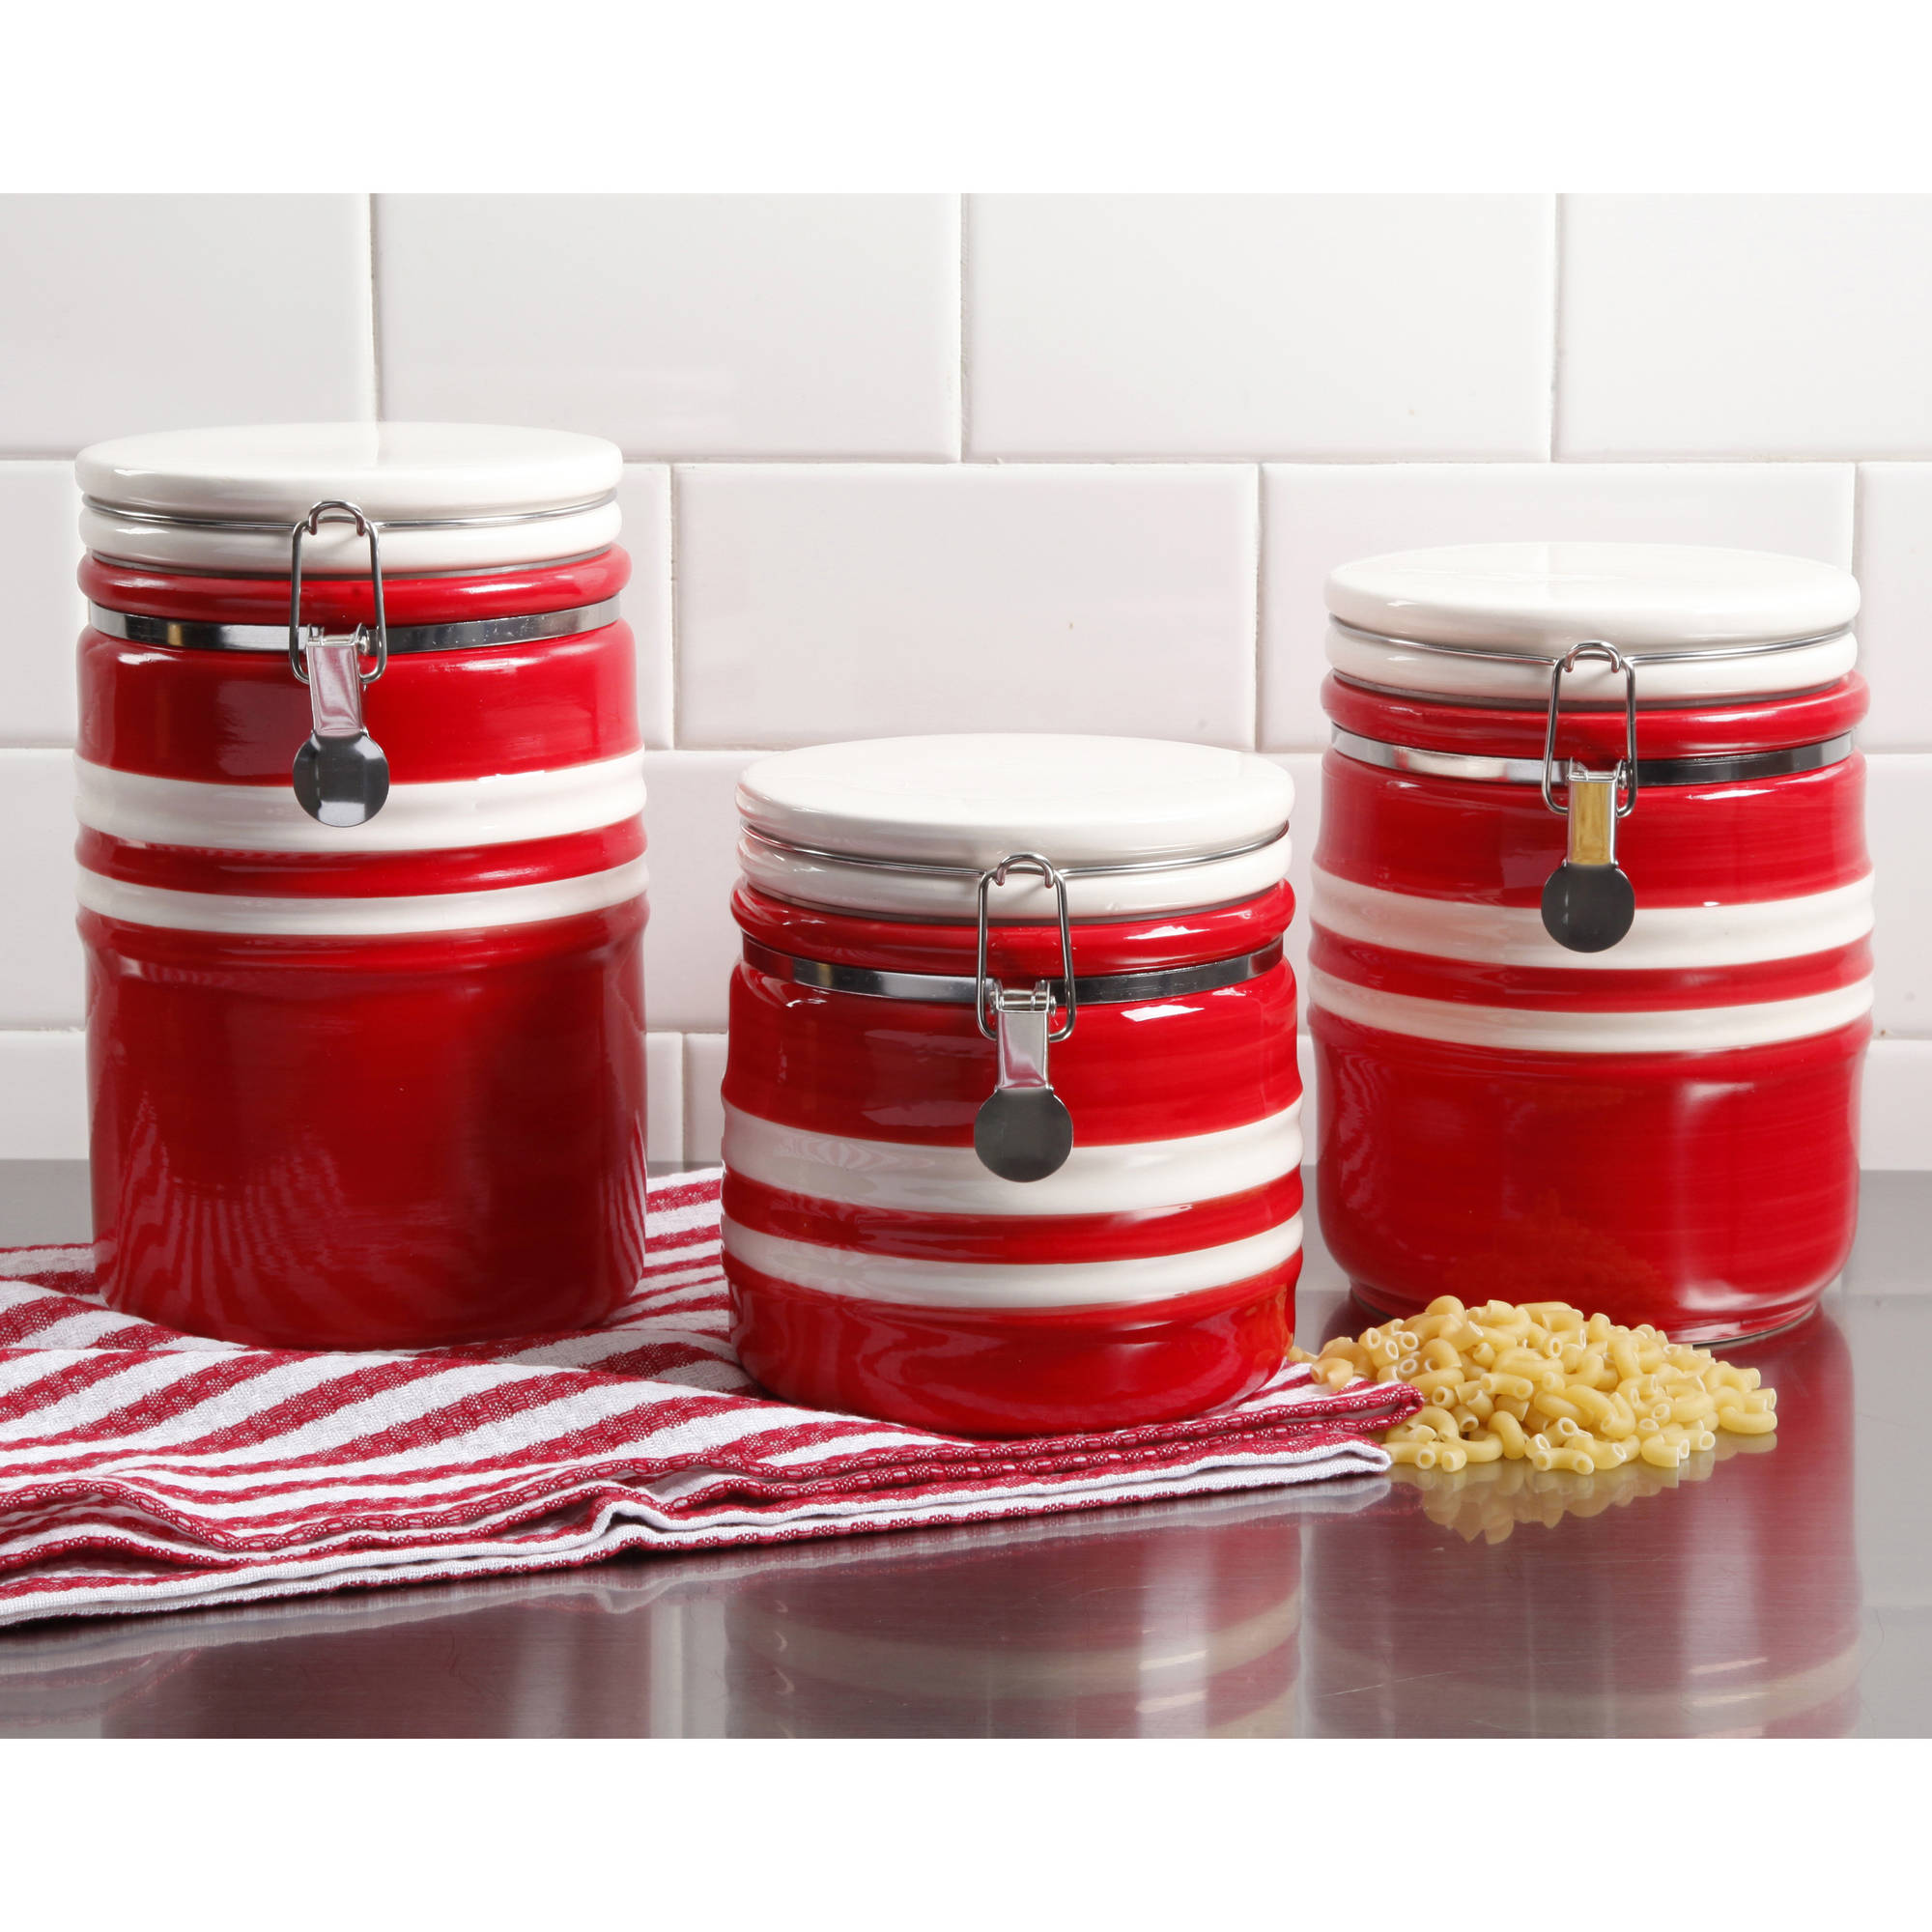 Gibson Home Just Dine Bistro Edge 3-Piece Canister Set, Red